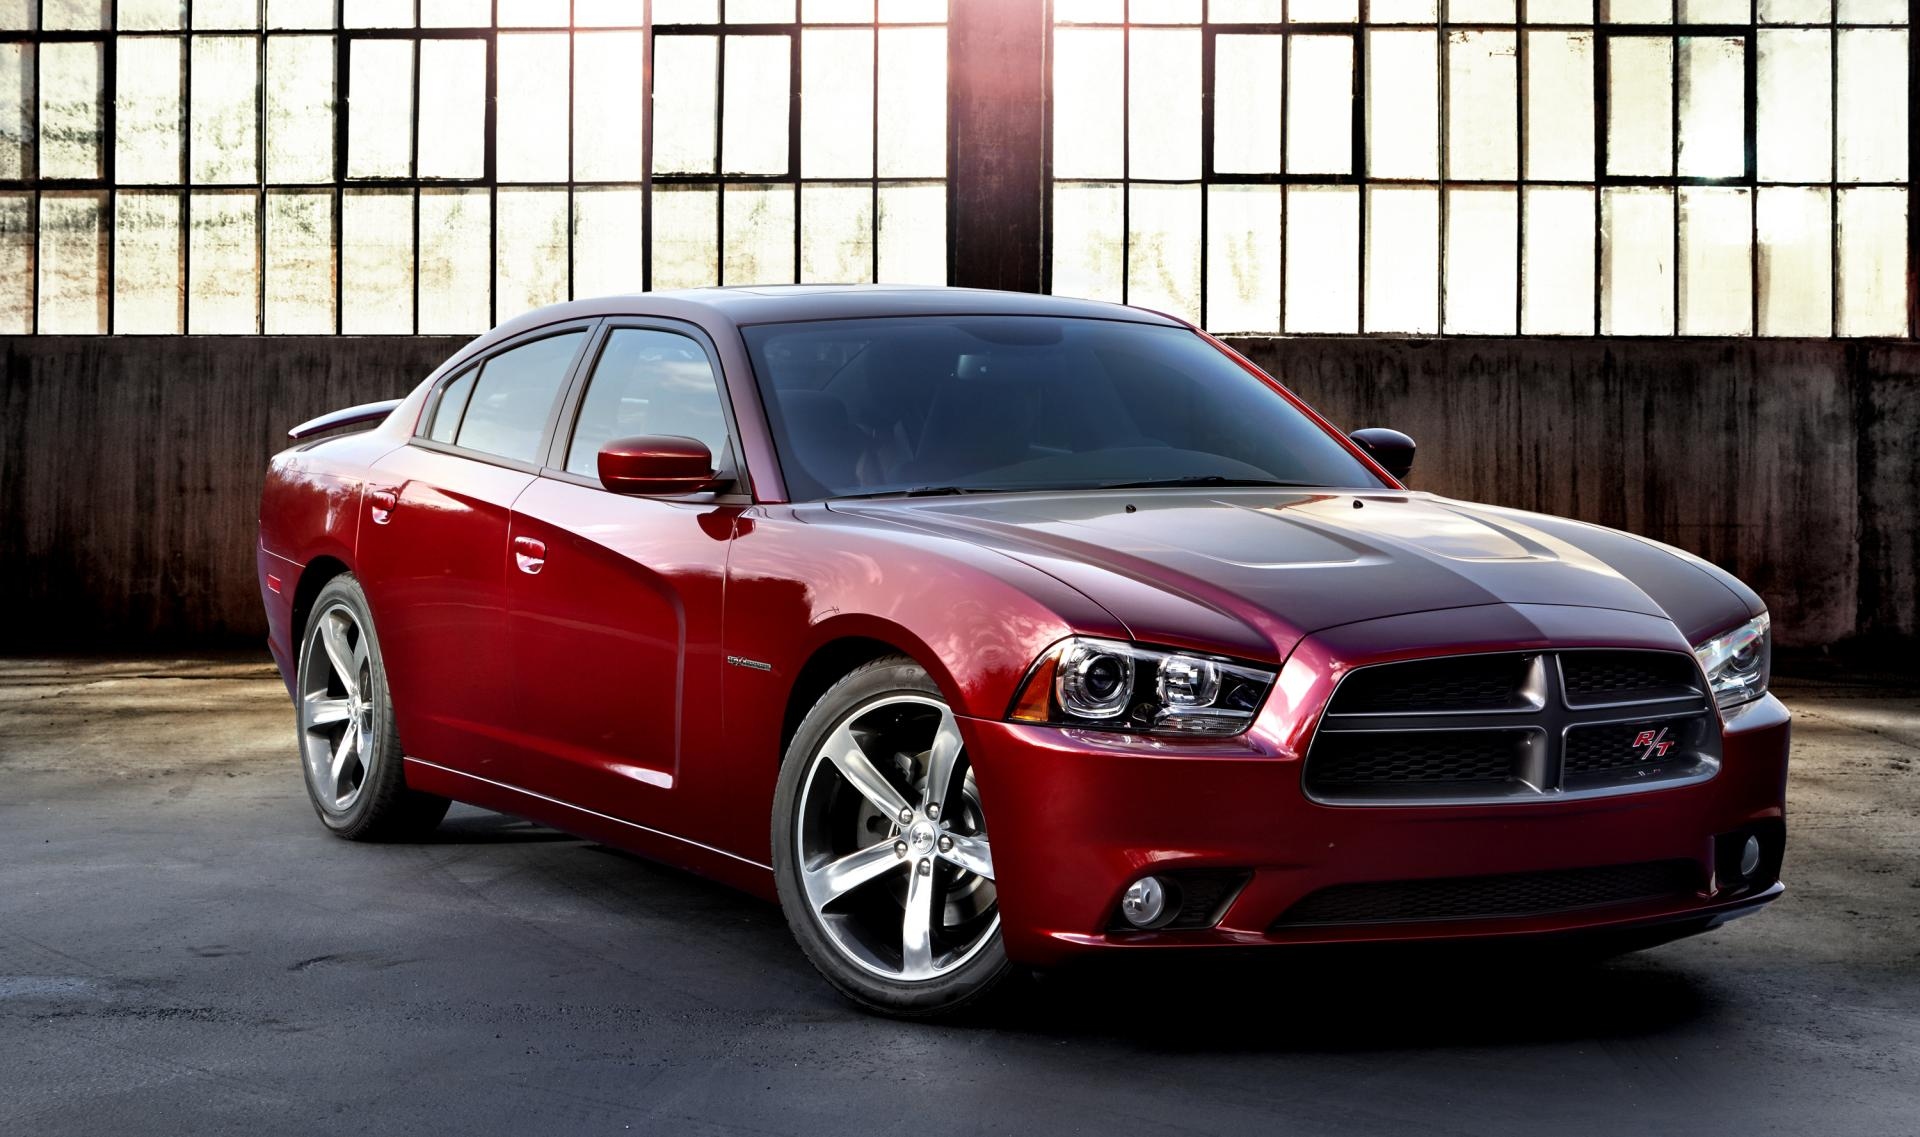 2014 Dodge Charger 100th Anniversary Edition News And